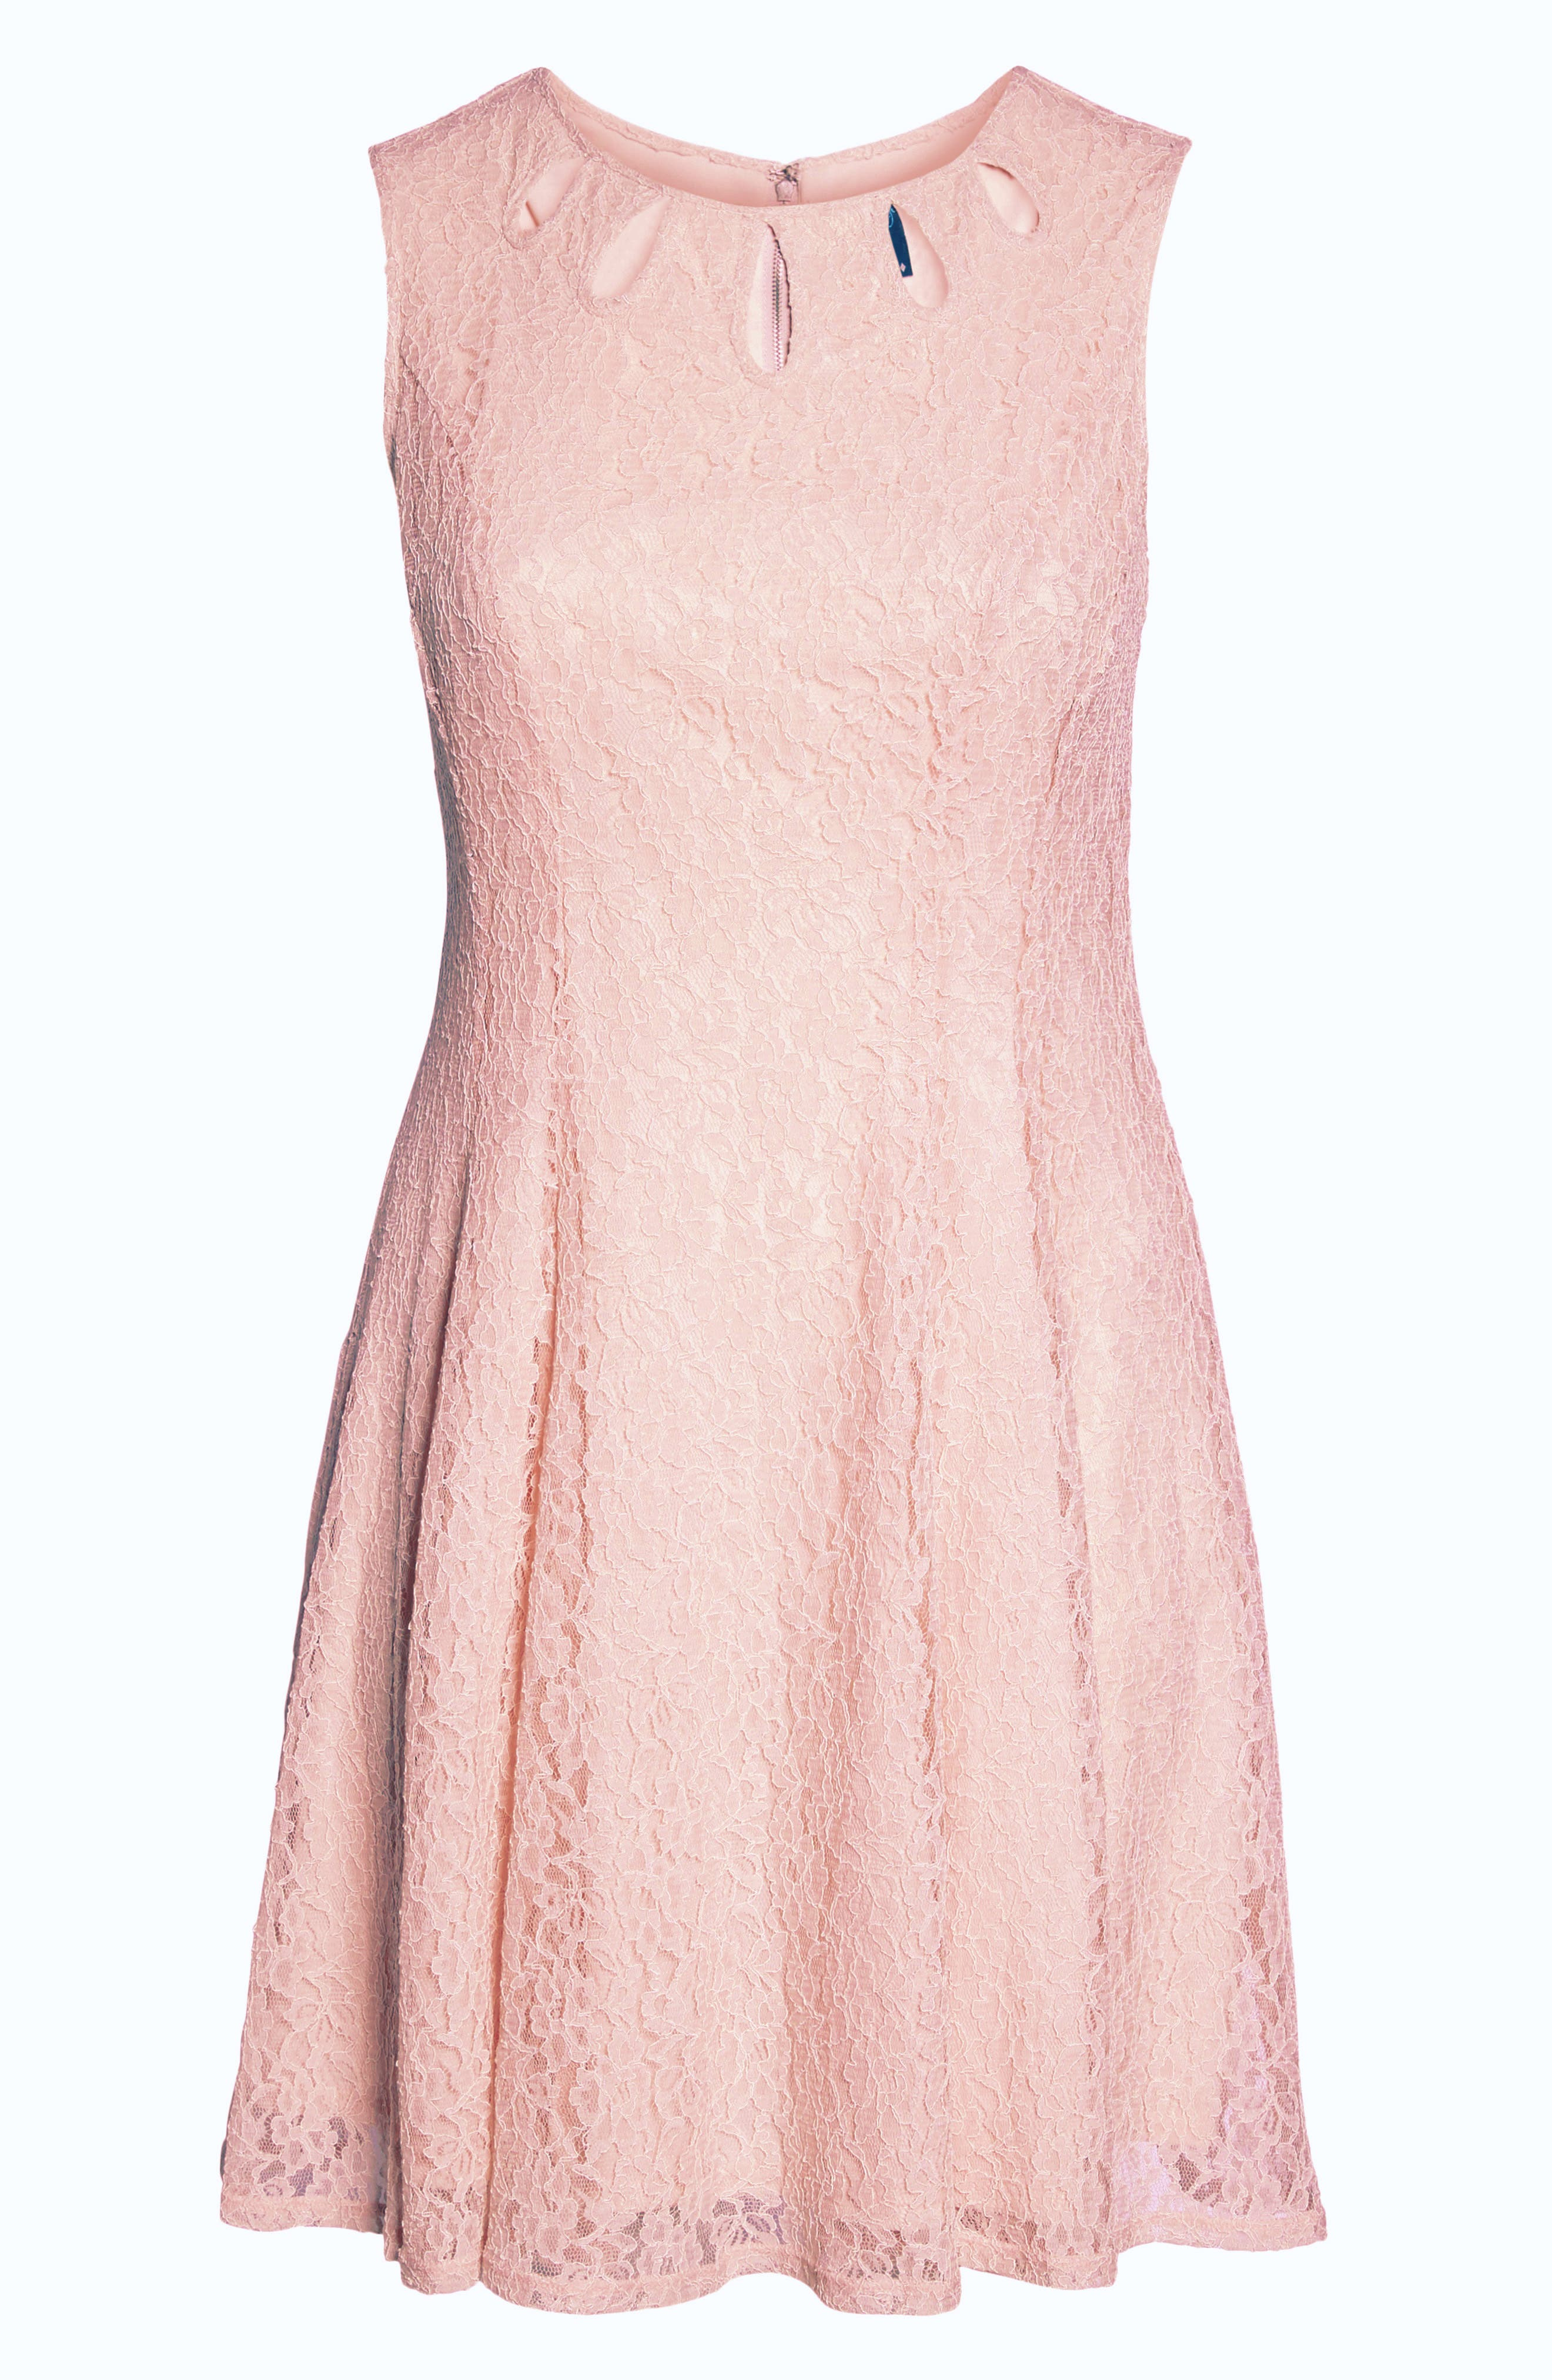 Lace Teardrop Cutout Fit and Flare Dress,                             Alternate thumbnail 6, color,                             Pink/ Pink